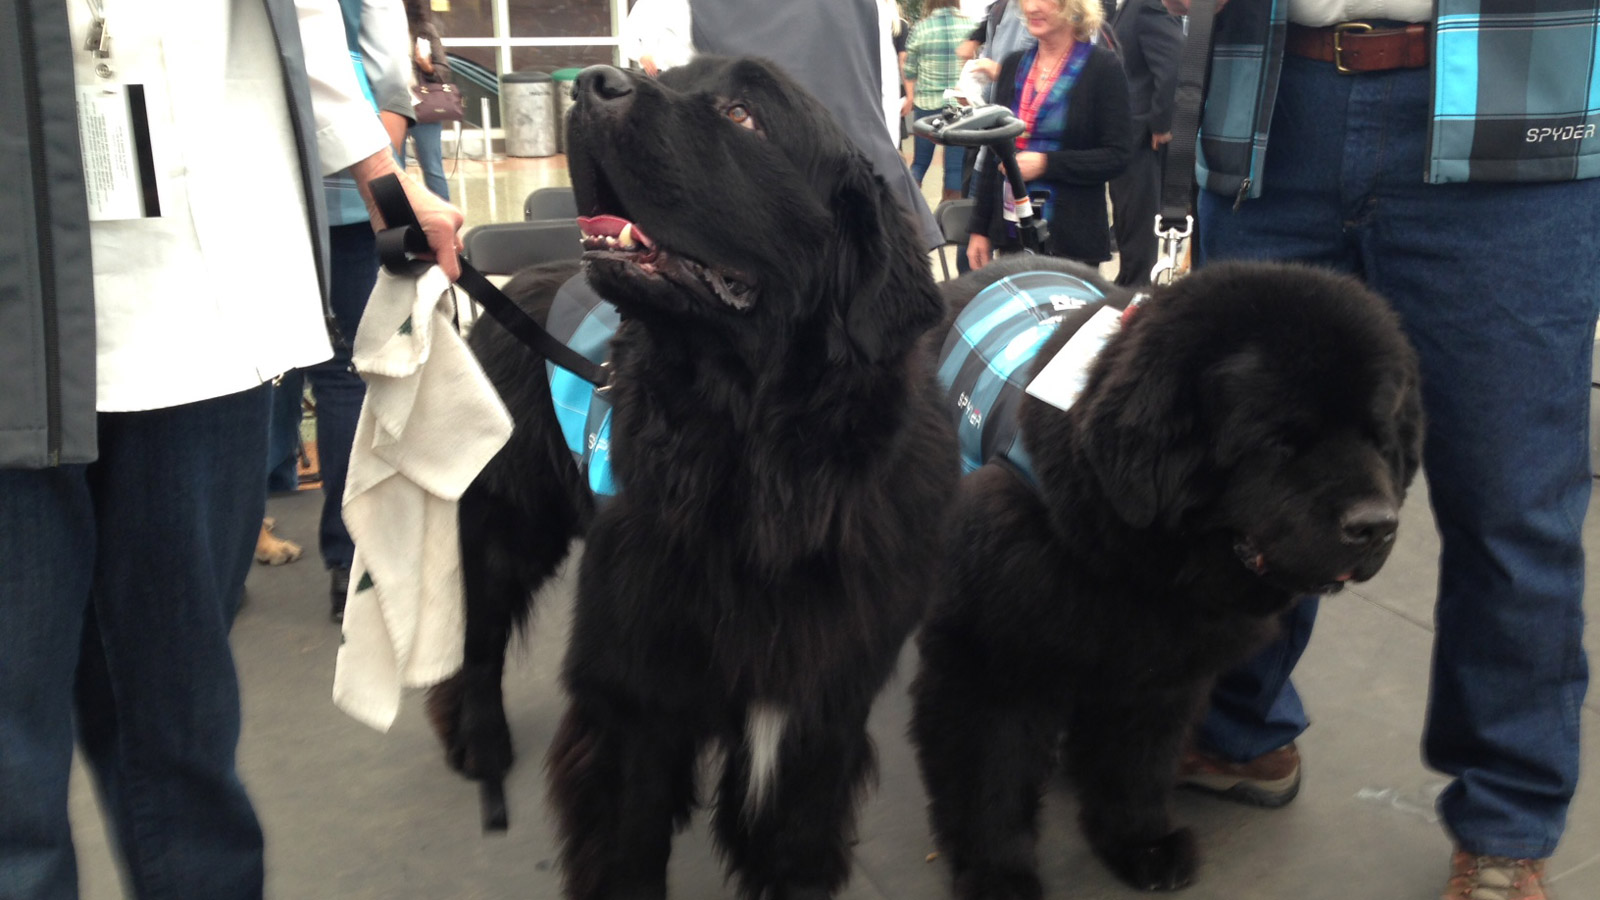 Pet therapy program dogs at DIA (credit: CBS)